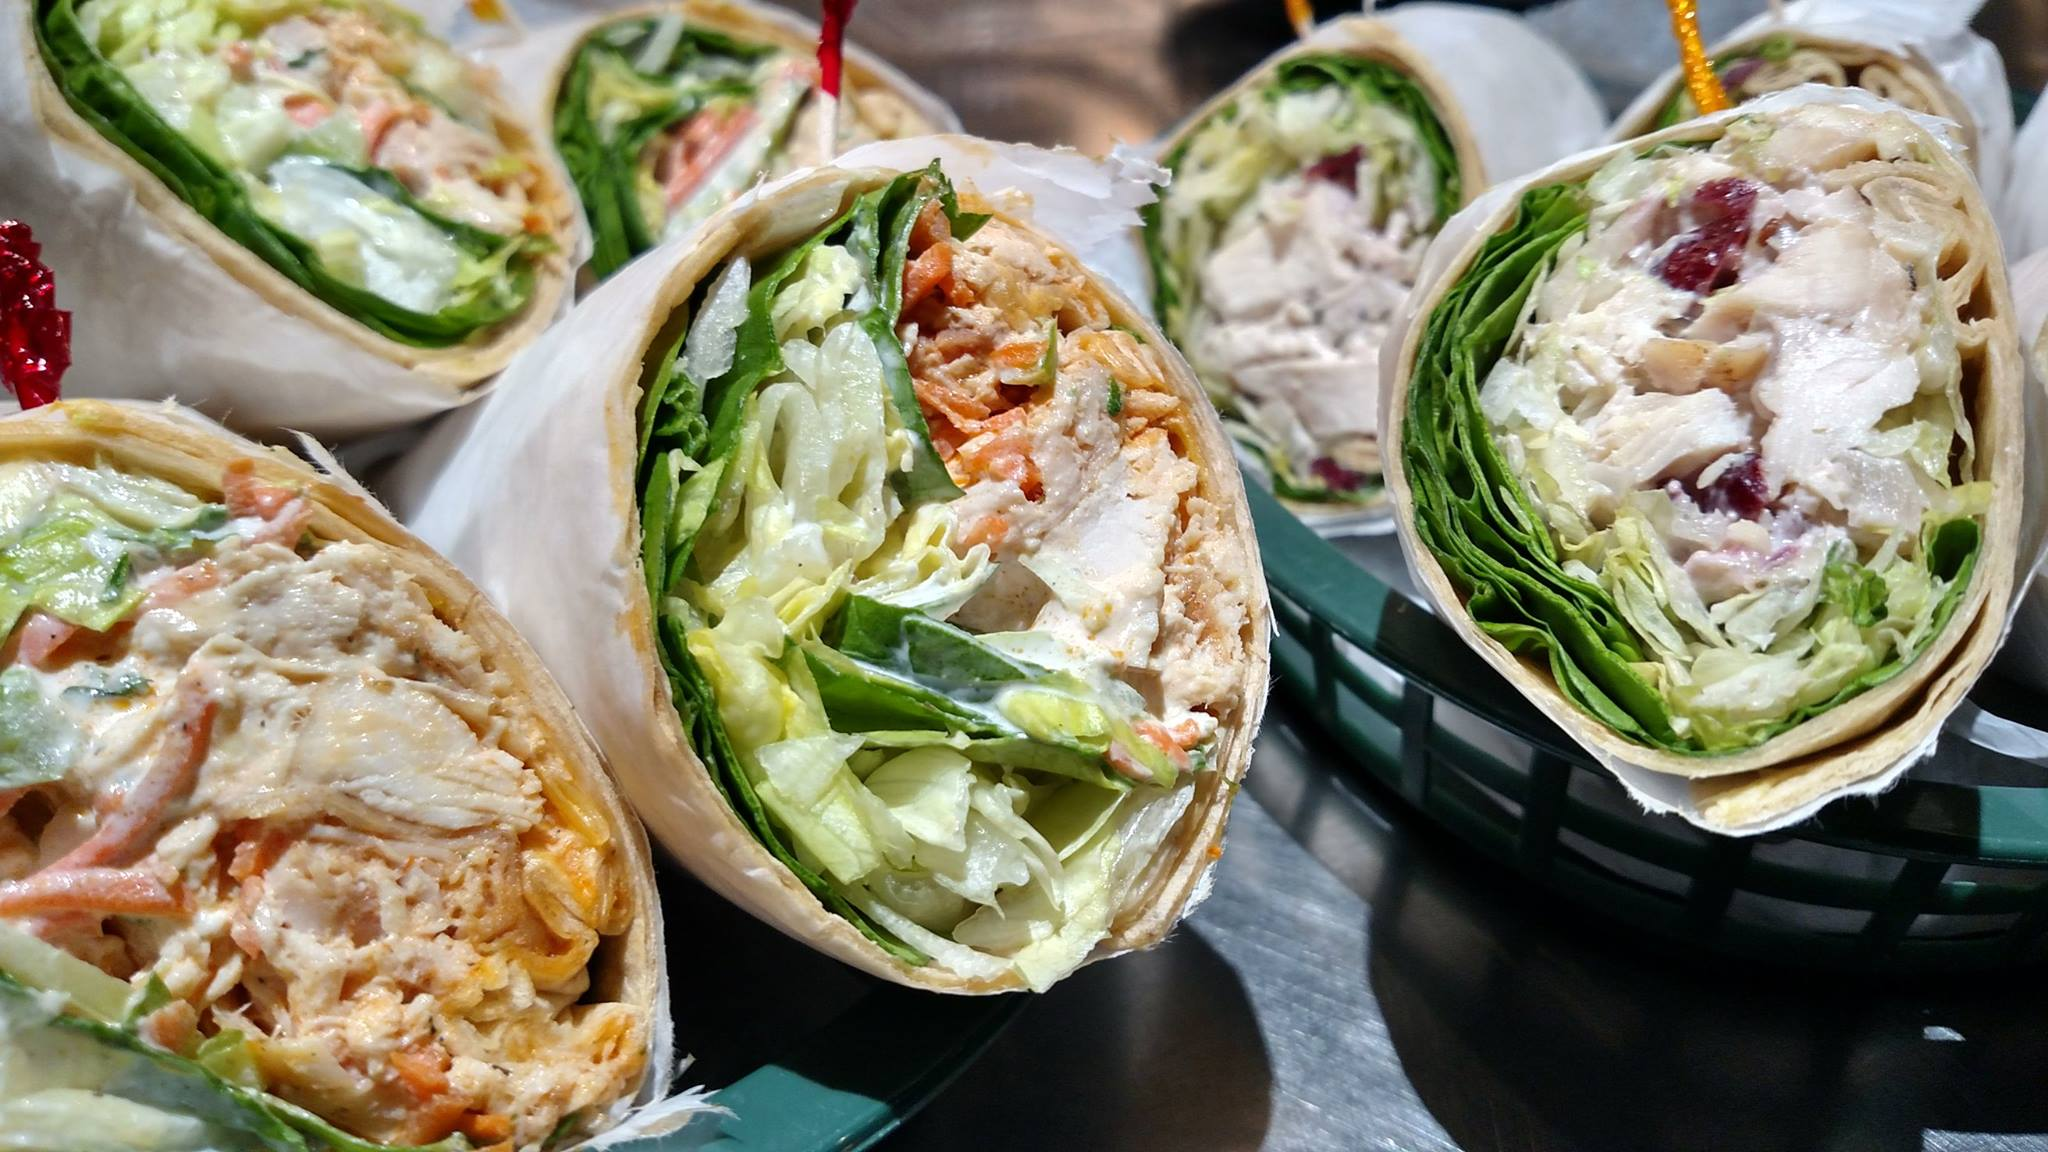 Ryke's Cafe - Specialty Wraps